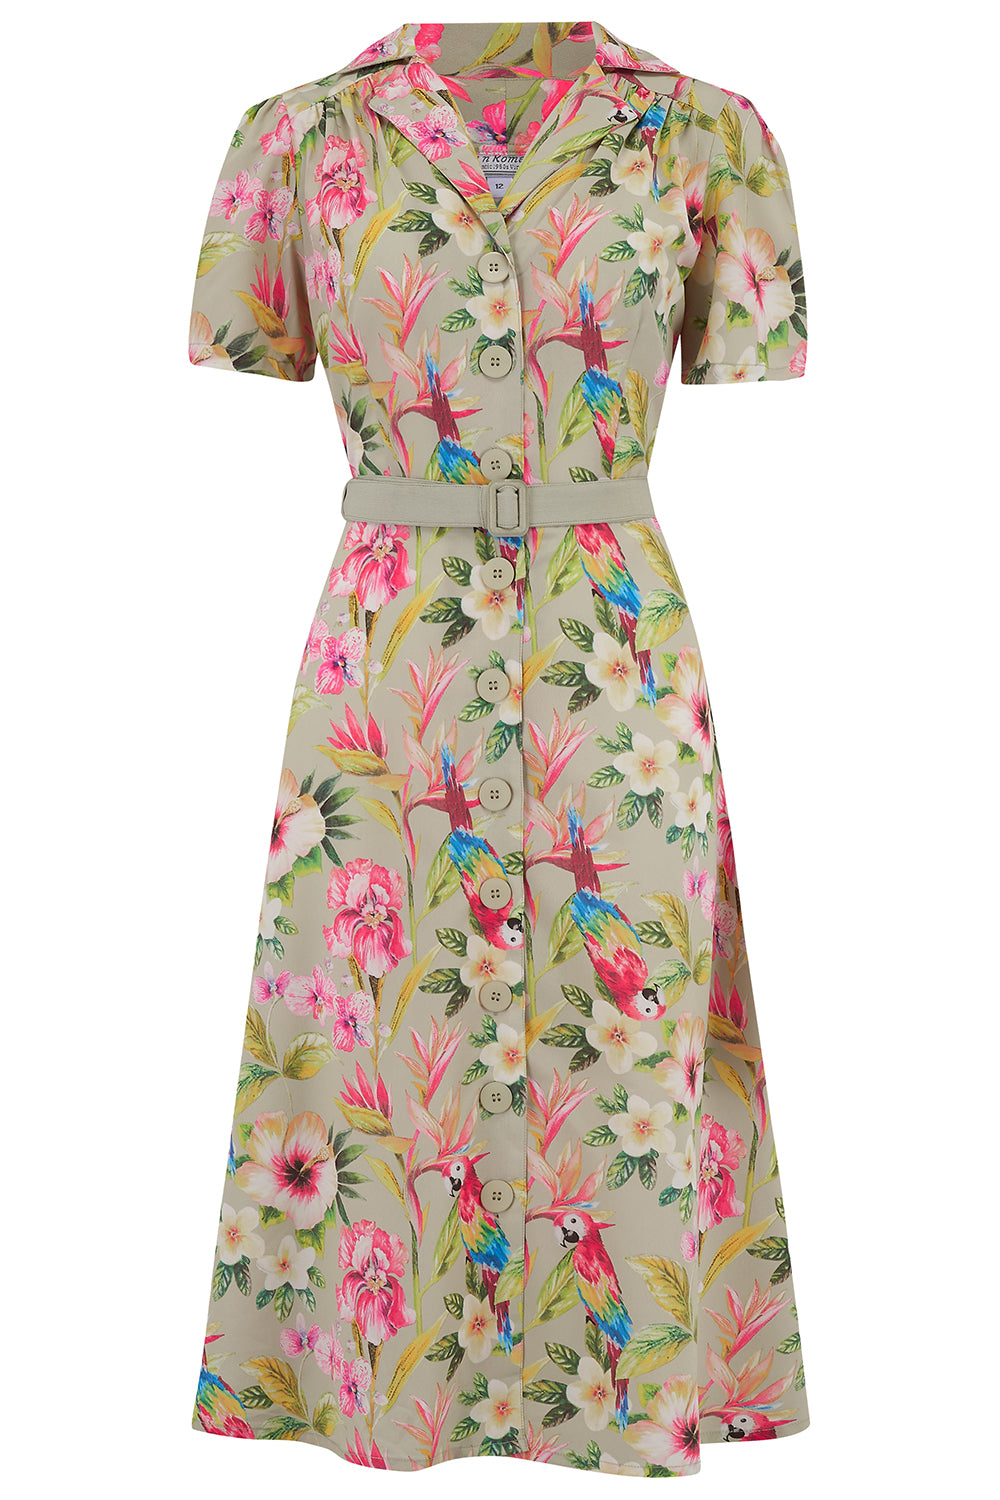 """Charlene"" Shirtwaister Dress in Paradise Print by Rock n Romance, Perfect 1950s Style"